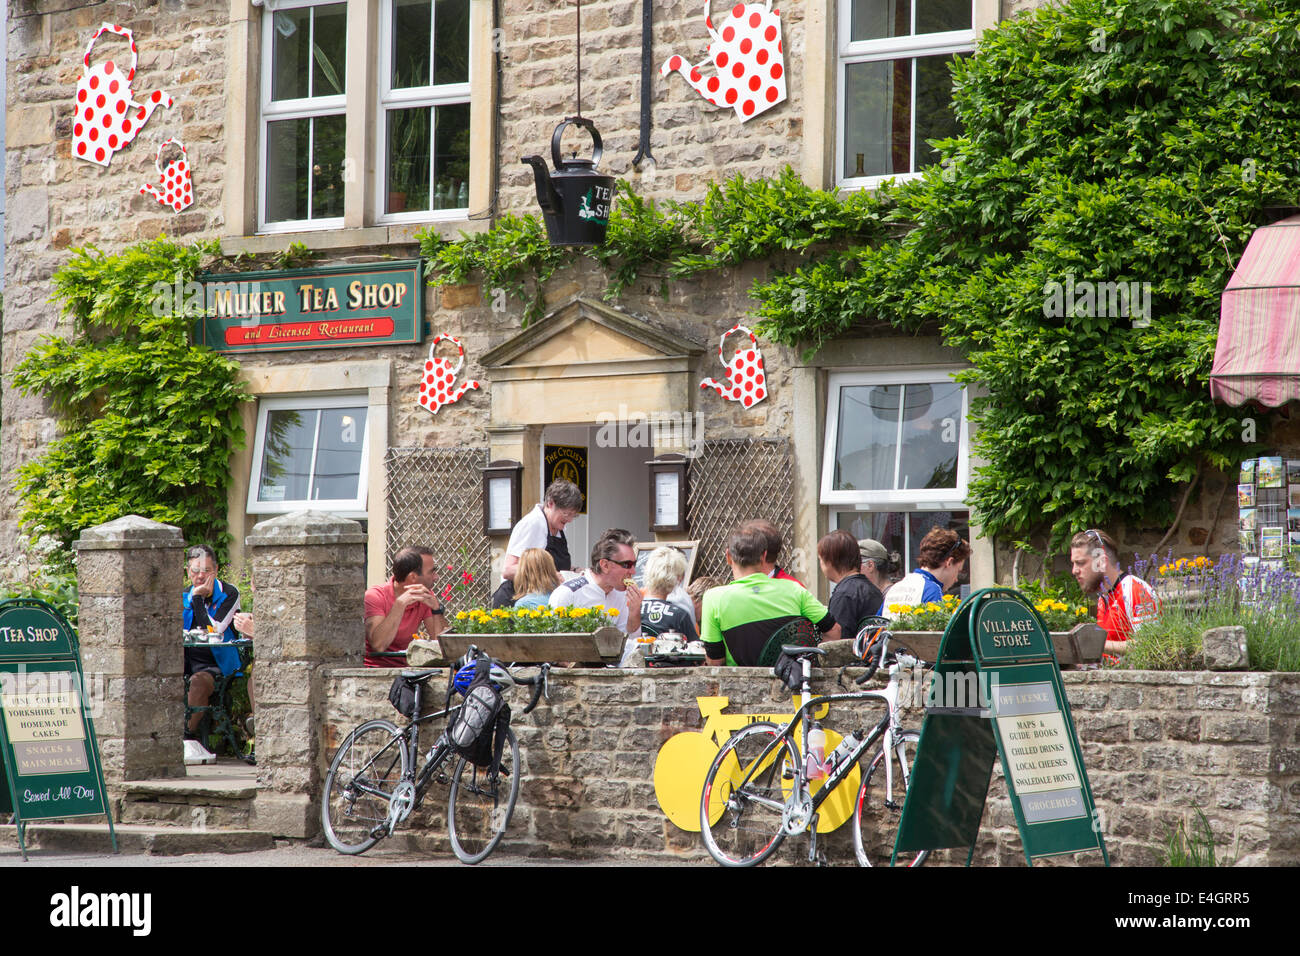 Cyclists at a cafe in Muker, Swaledale, Yorkshire Dales National Park, North Yorkshire, England, UK - Stock Image